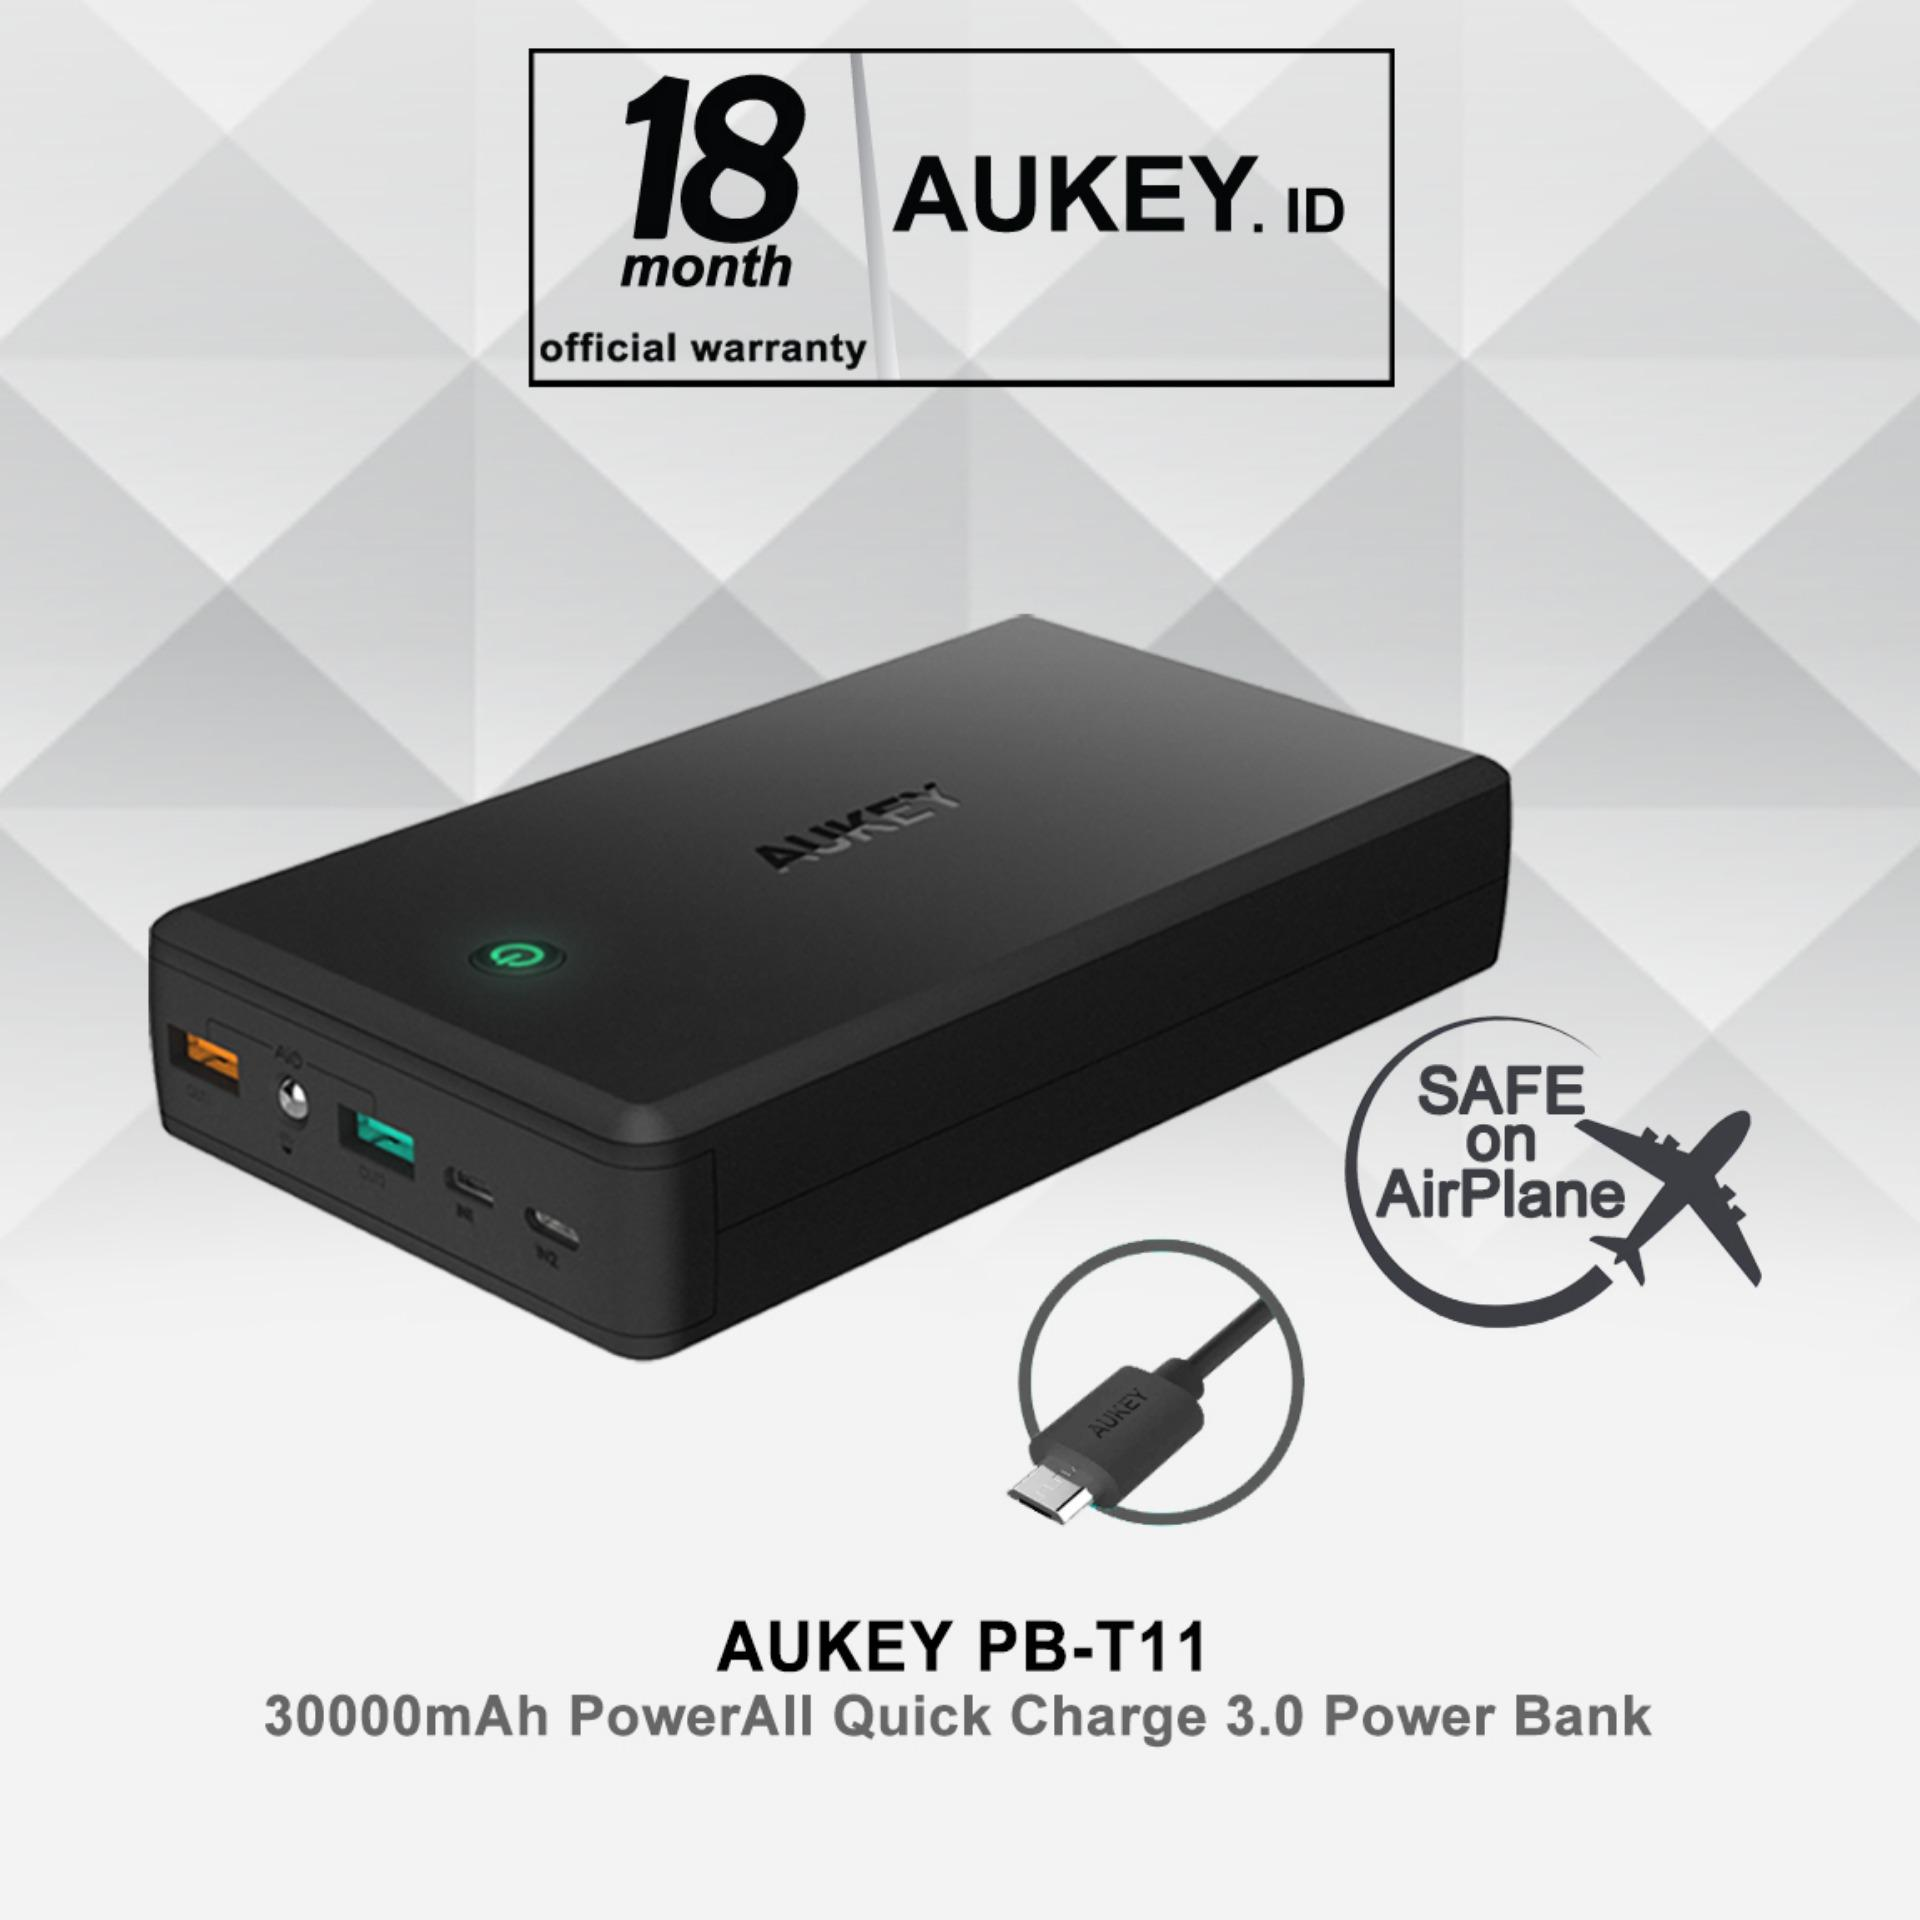 Jual Aukey Pb T11 30000Mah Powerall Quick Charge 3 Power Bank Hitam Import